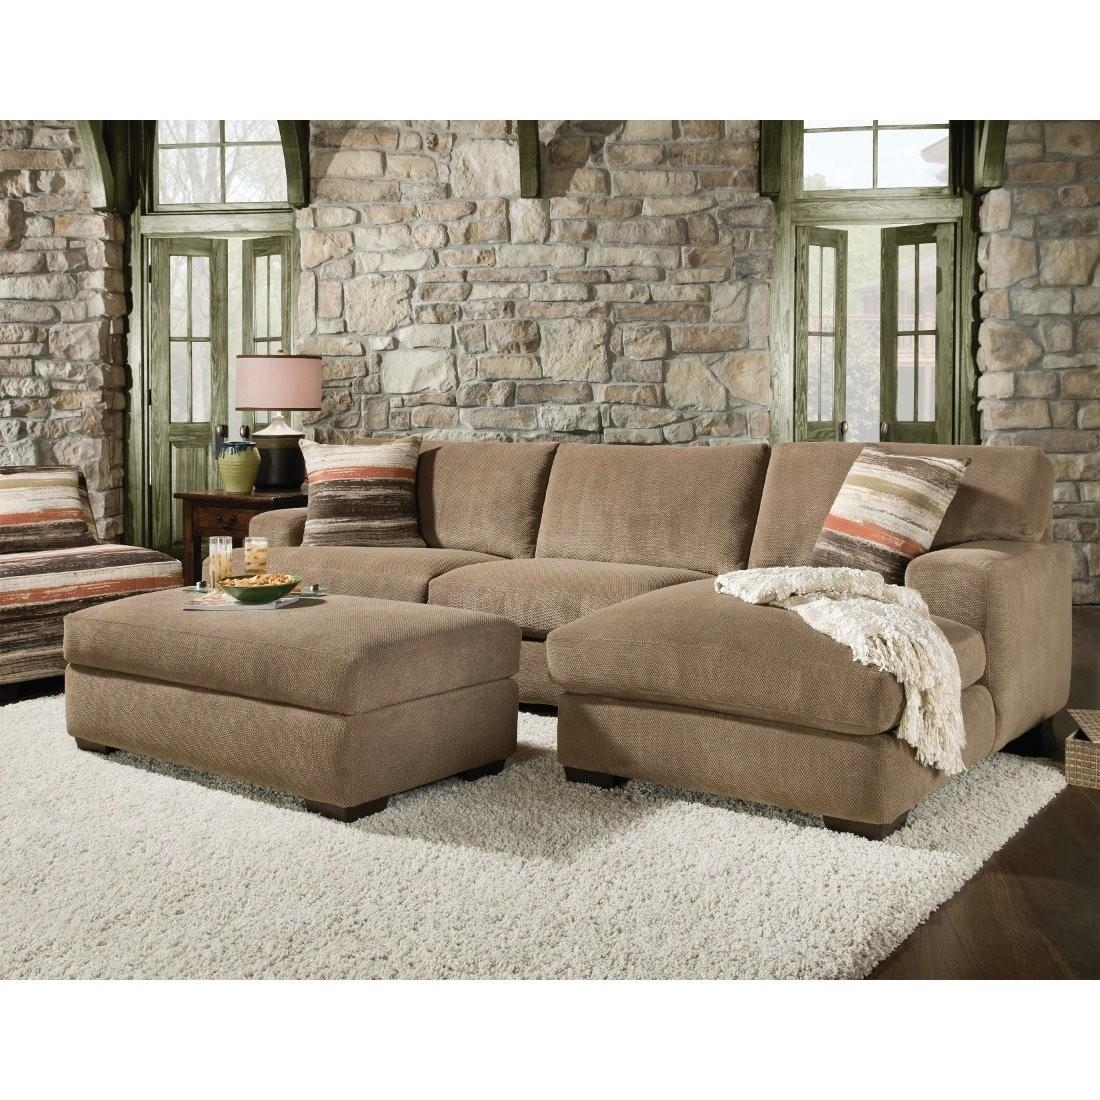 Sofas Center : Cozy Sectional Sofa With Chaise And Ottoman About With Down Feather Sectional Sofa (View 7 of 15)